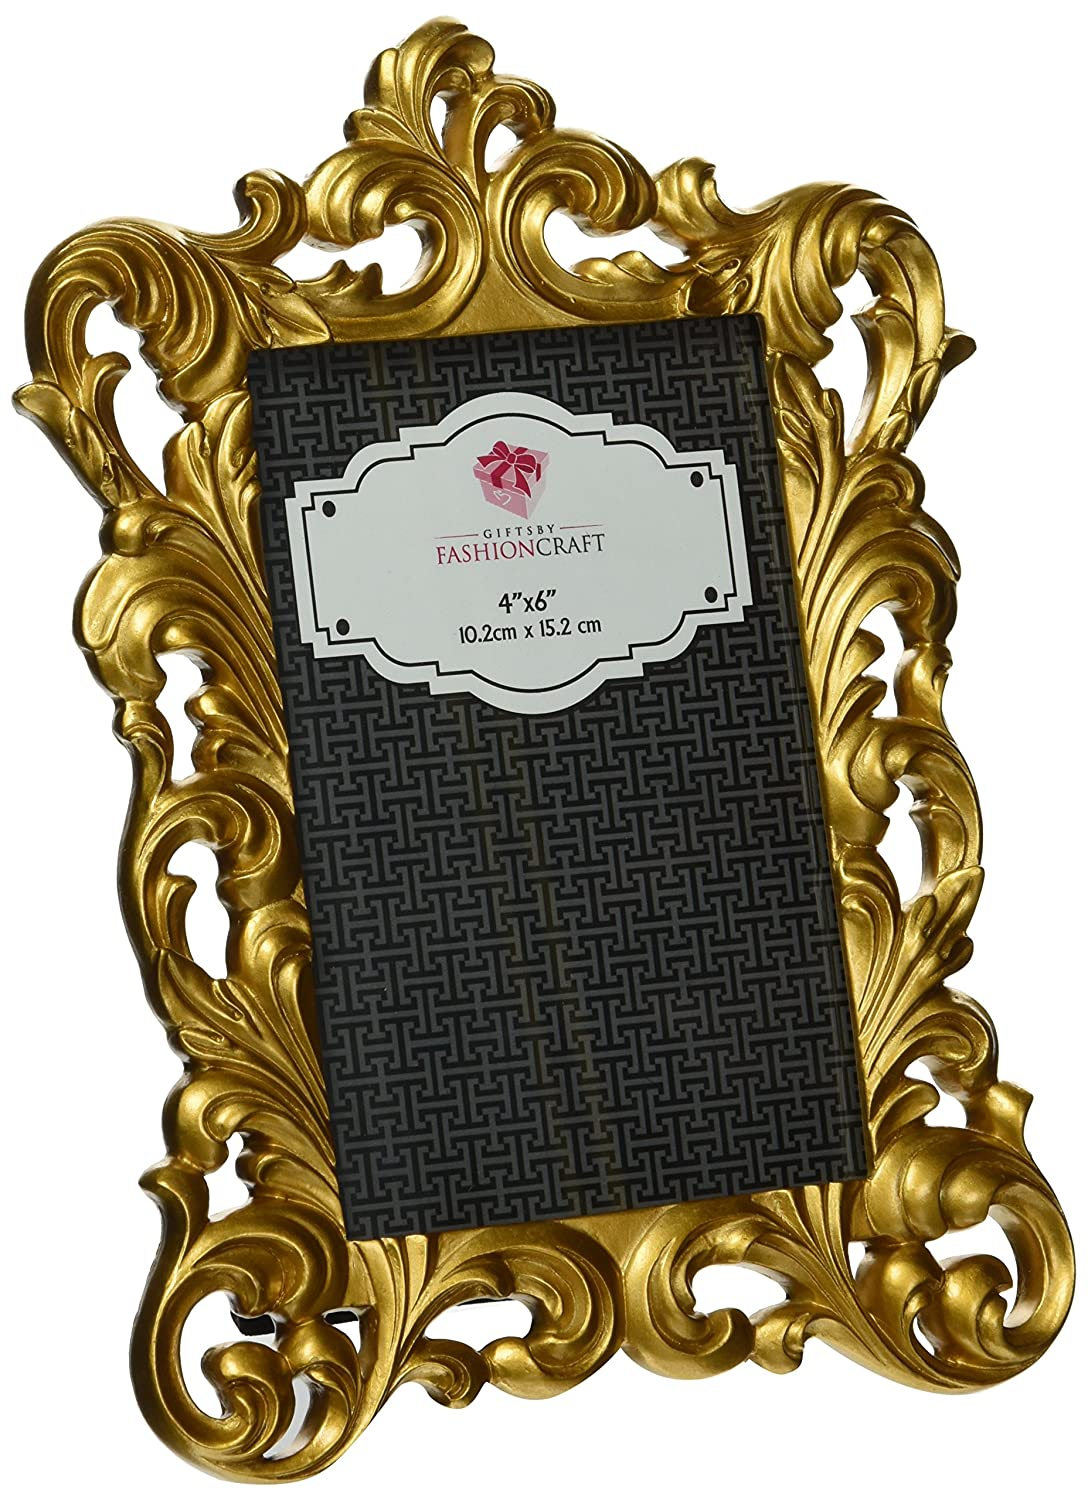 Item #105018 Measures 9.5 inch x 6.5 inch Decor Accent Fashioncraft Gold Metallic 4 x 6 inch Baroque Polyresin Photo Frame